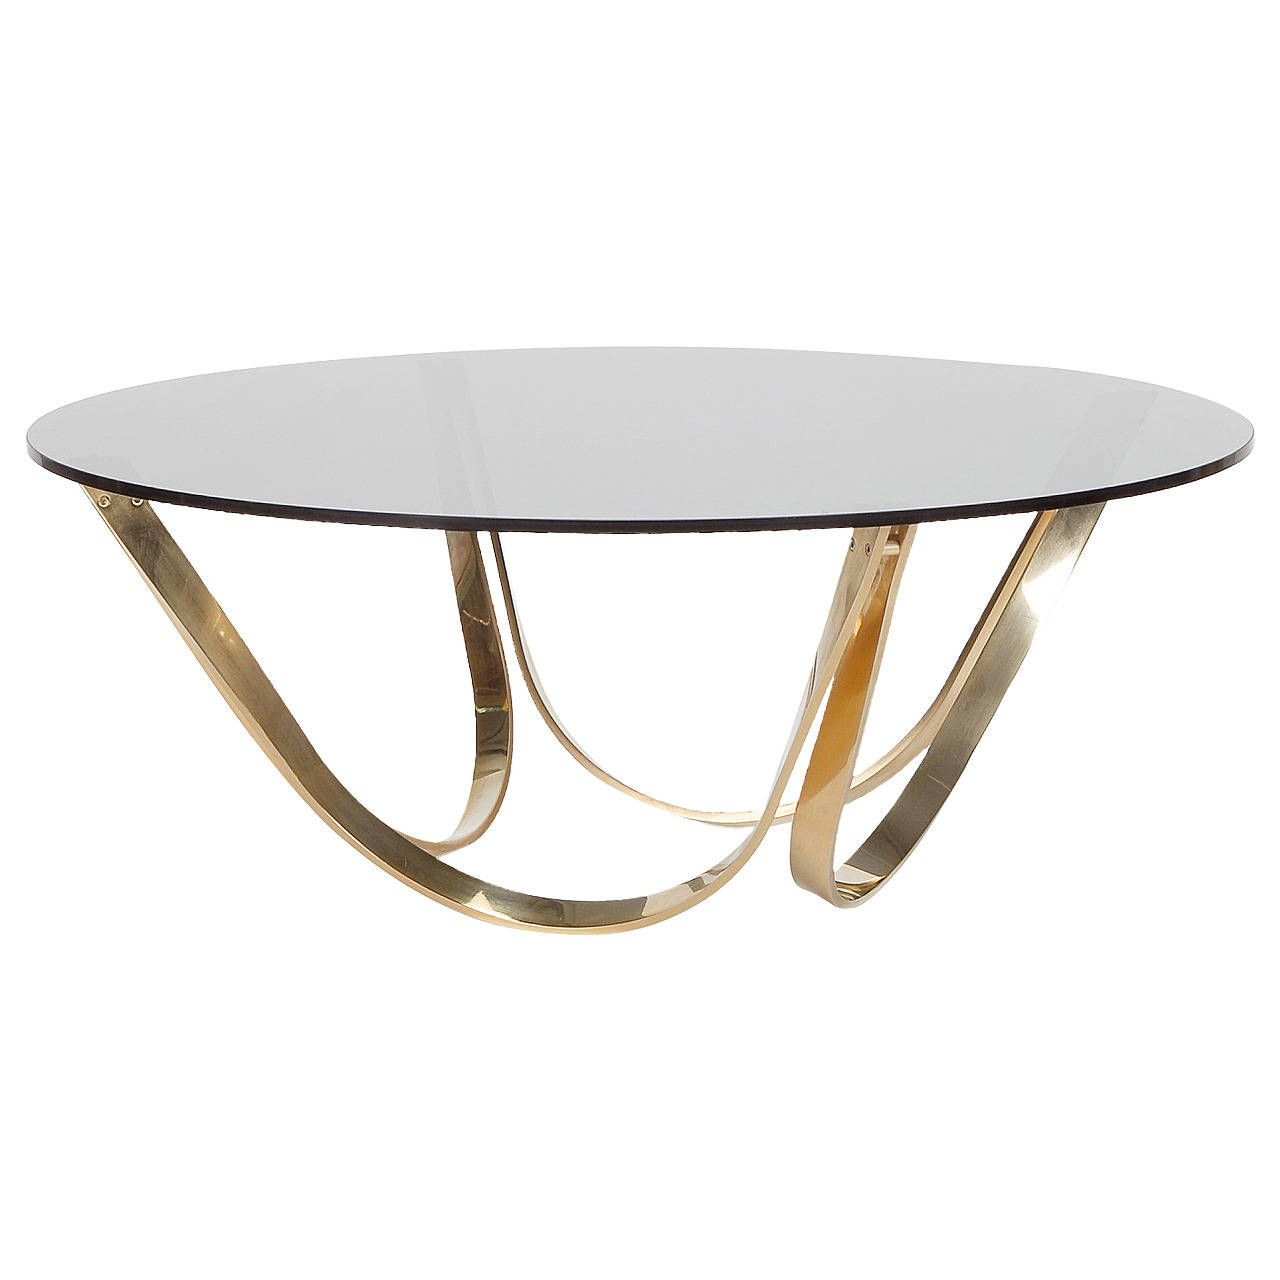 Brass And Smoked Glass Coffee Table By Roger Sprunger 1stdibs Com Glass Coffee Table Coffee Table Smoked Glass [ 1280 x 1280 Pixel ]